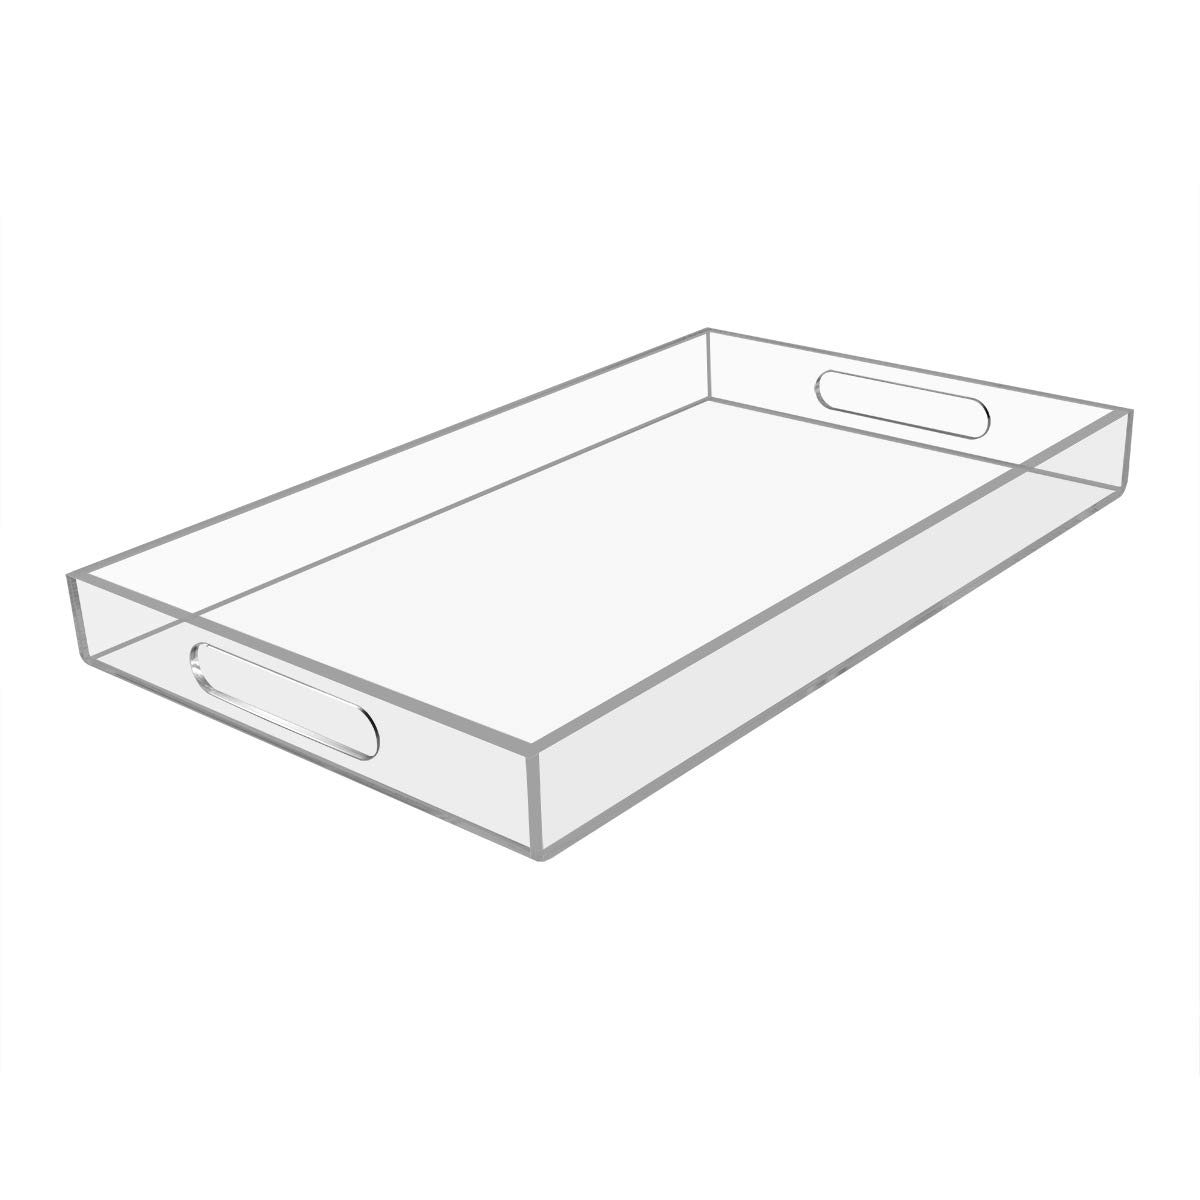 NIUBEE Acrylic Serving Tray 12x20 Inches -Spill Proof- Clear Decorative Tray Organiser for Ottoman Coffee Table Countertop with Handles by NIUBEE